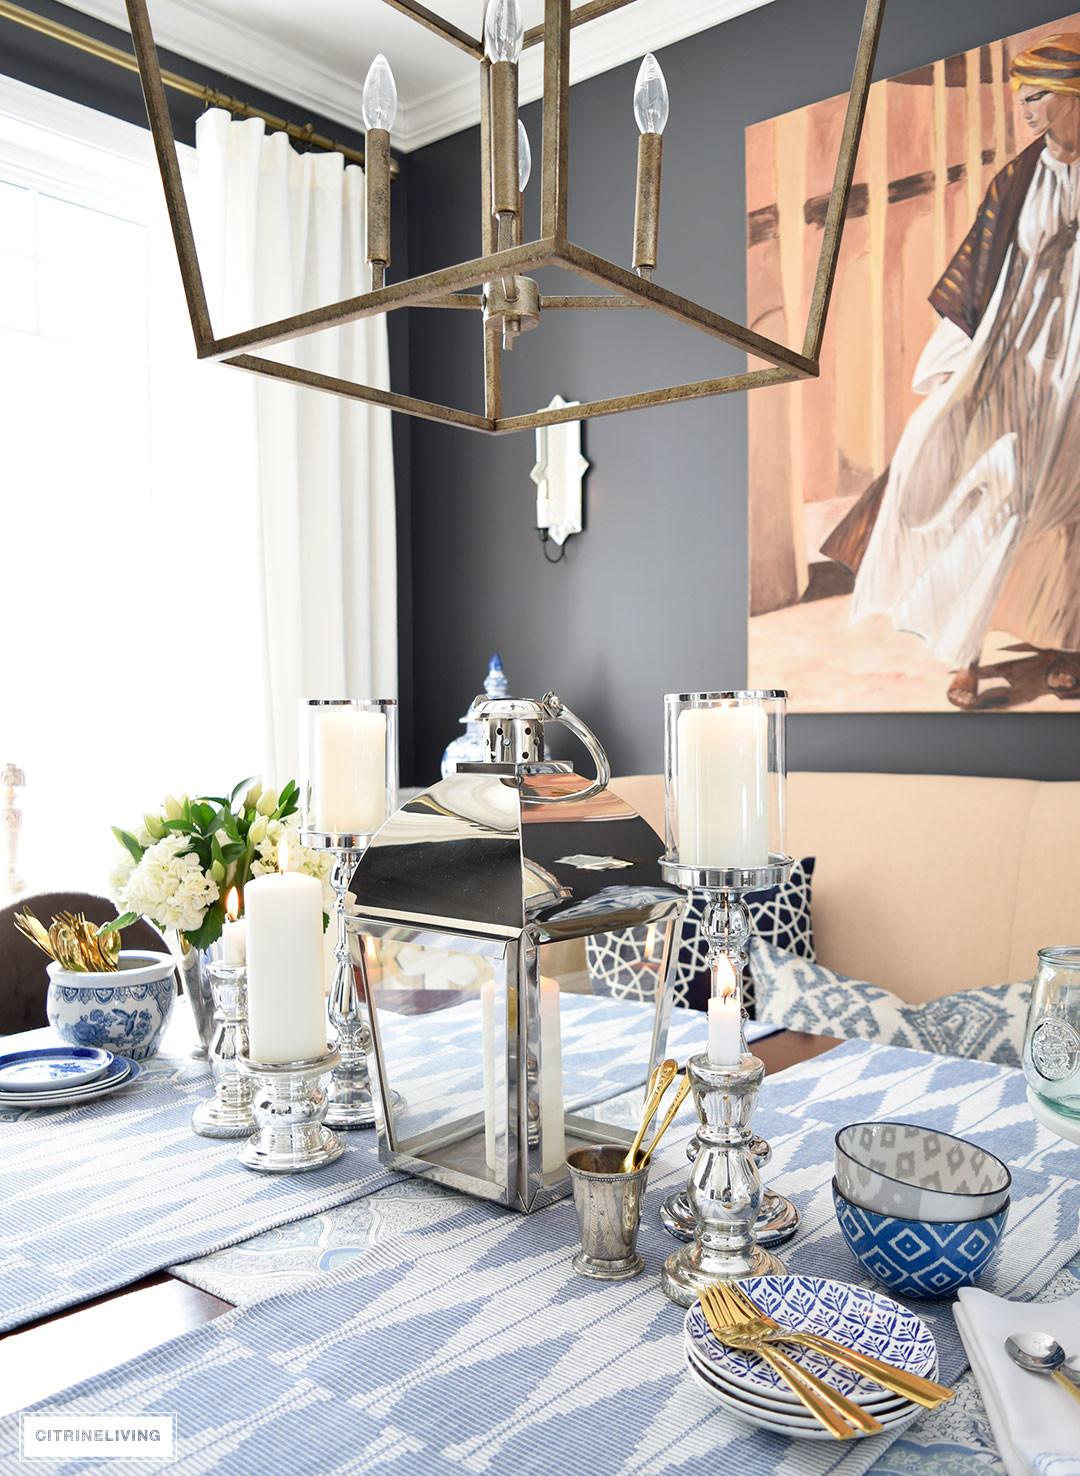 Citrineliving Fourteen Ideas Style Your Home Spring